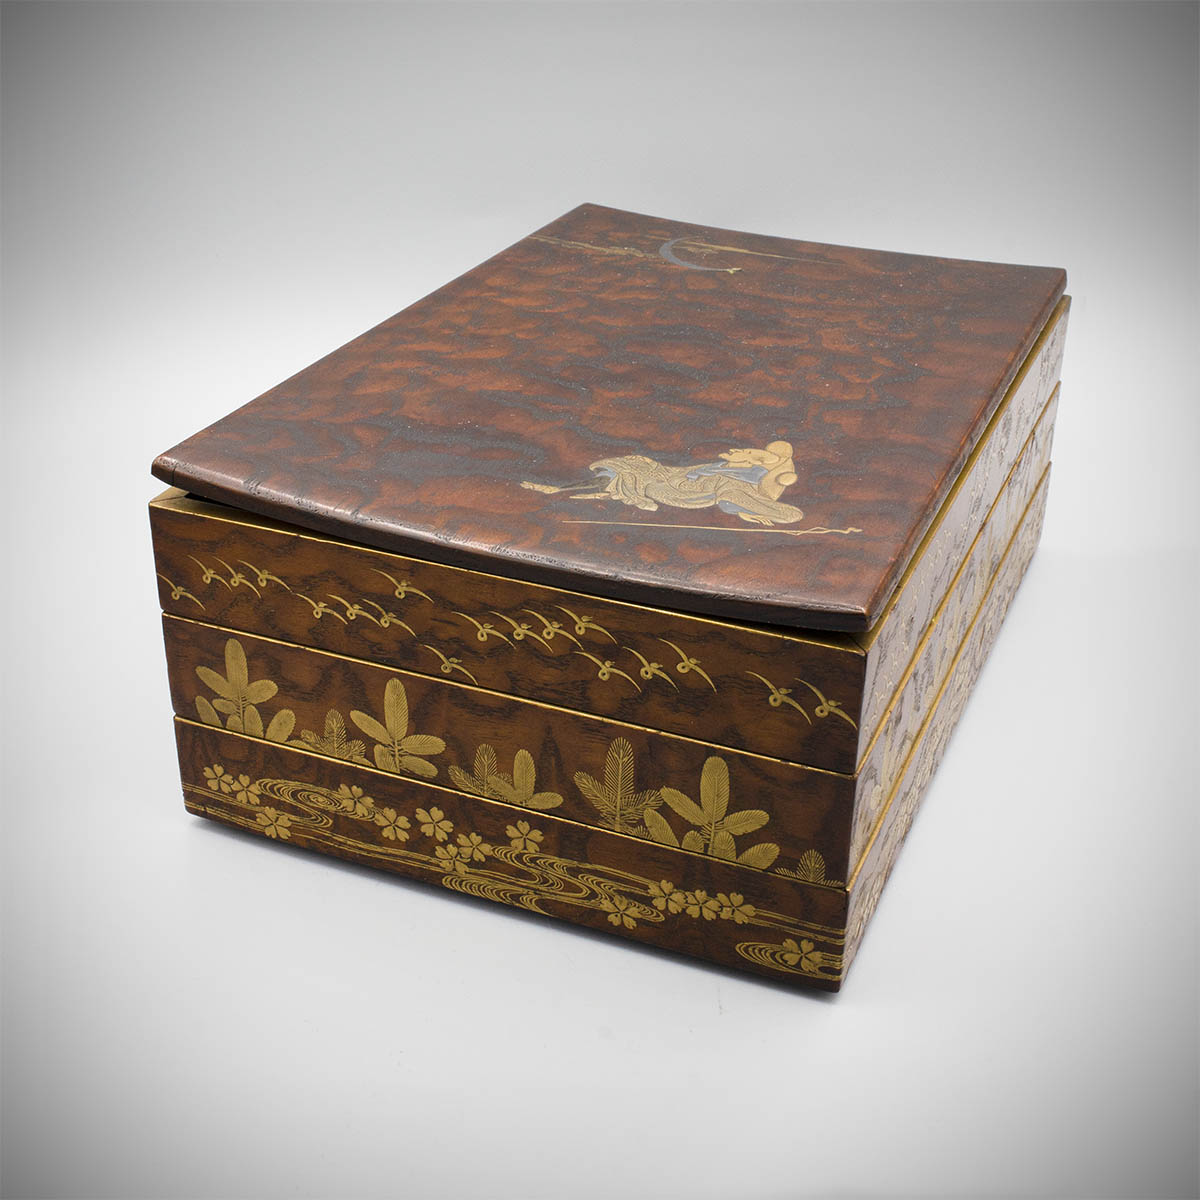 Partially lacquered three tiered wood box, MR3624_v.2